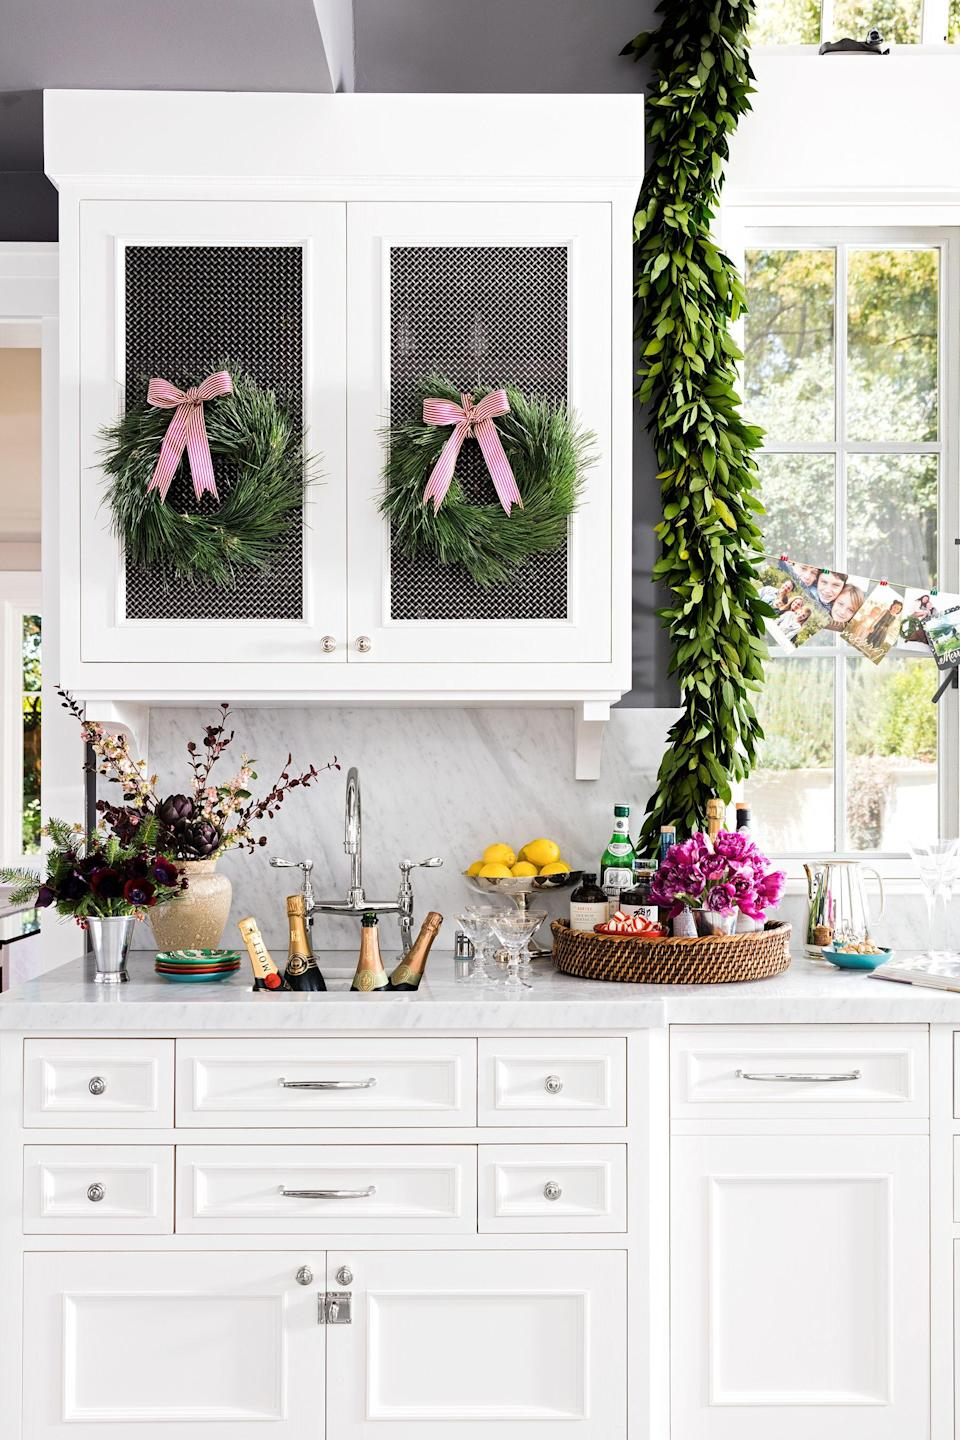 """<p><a href=""""https://www.housebeautiful.com/entertaining/holidays-celebrations/g3914/christmas-card-ideas/"""" rel=""""nofollow noopener"""" target=""""_blank"""" data-ylk=""""slk:Holiday cards"""" class=""""link rapid-noclick-resp"""">Holiday cards</a> tend to pile up on the entryway console table or on the kitchen counter, which can get over-cluttered and messy fast. Throwing them away makes you feel guilty (especially if the sender will be coming by at some point during the holiday season), but paper pile-ups are seriously anxiety-provoking, so you're going to need a cute card holder or some <a href=""""https://www.housebeautiful.com/entertaining/holidays-celebrations/g3957/christmas-garlands/"""" rel=""""nofollow noopener"""" target=""""_blank"""" data-ylk=""""slk:other festive decorative display"""" class=""""link rapid-noclick-resp"""">other festive decorative display</a> that keeps things <a href=""""https://www.housebeautiful.com/lifestyle/organizing-tips/g2970/organization-makeovers/"""" rel=""""nofollow noopener"""" target=""""_blank"""" data-ylk=""""slk:organized"""" class=""""link rapid-noclick-resp"""">organized</a>. These DIY options are so chic, they'll make you actually want to display all your cards. Let the <a href=""""https://www.housebeautiful.com/entertaining/holidays-celebrations/g22675518/easy-christmas-craft-ideas/"""" rel=""""nofollow noopener"""" target=""""_blank"""" data-ylk=""""slk:festive crafting"""" class=""""link rapid-noclick-resp"""">festive crafting</a> begin. </p>"""